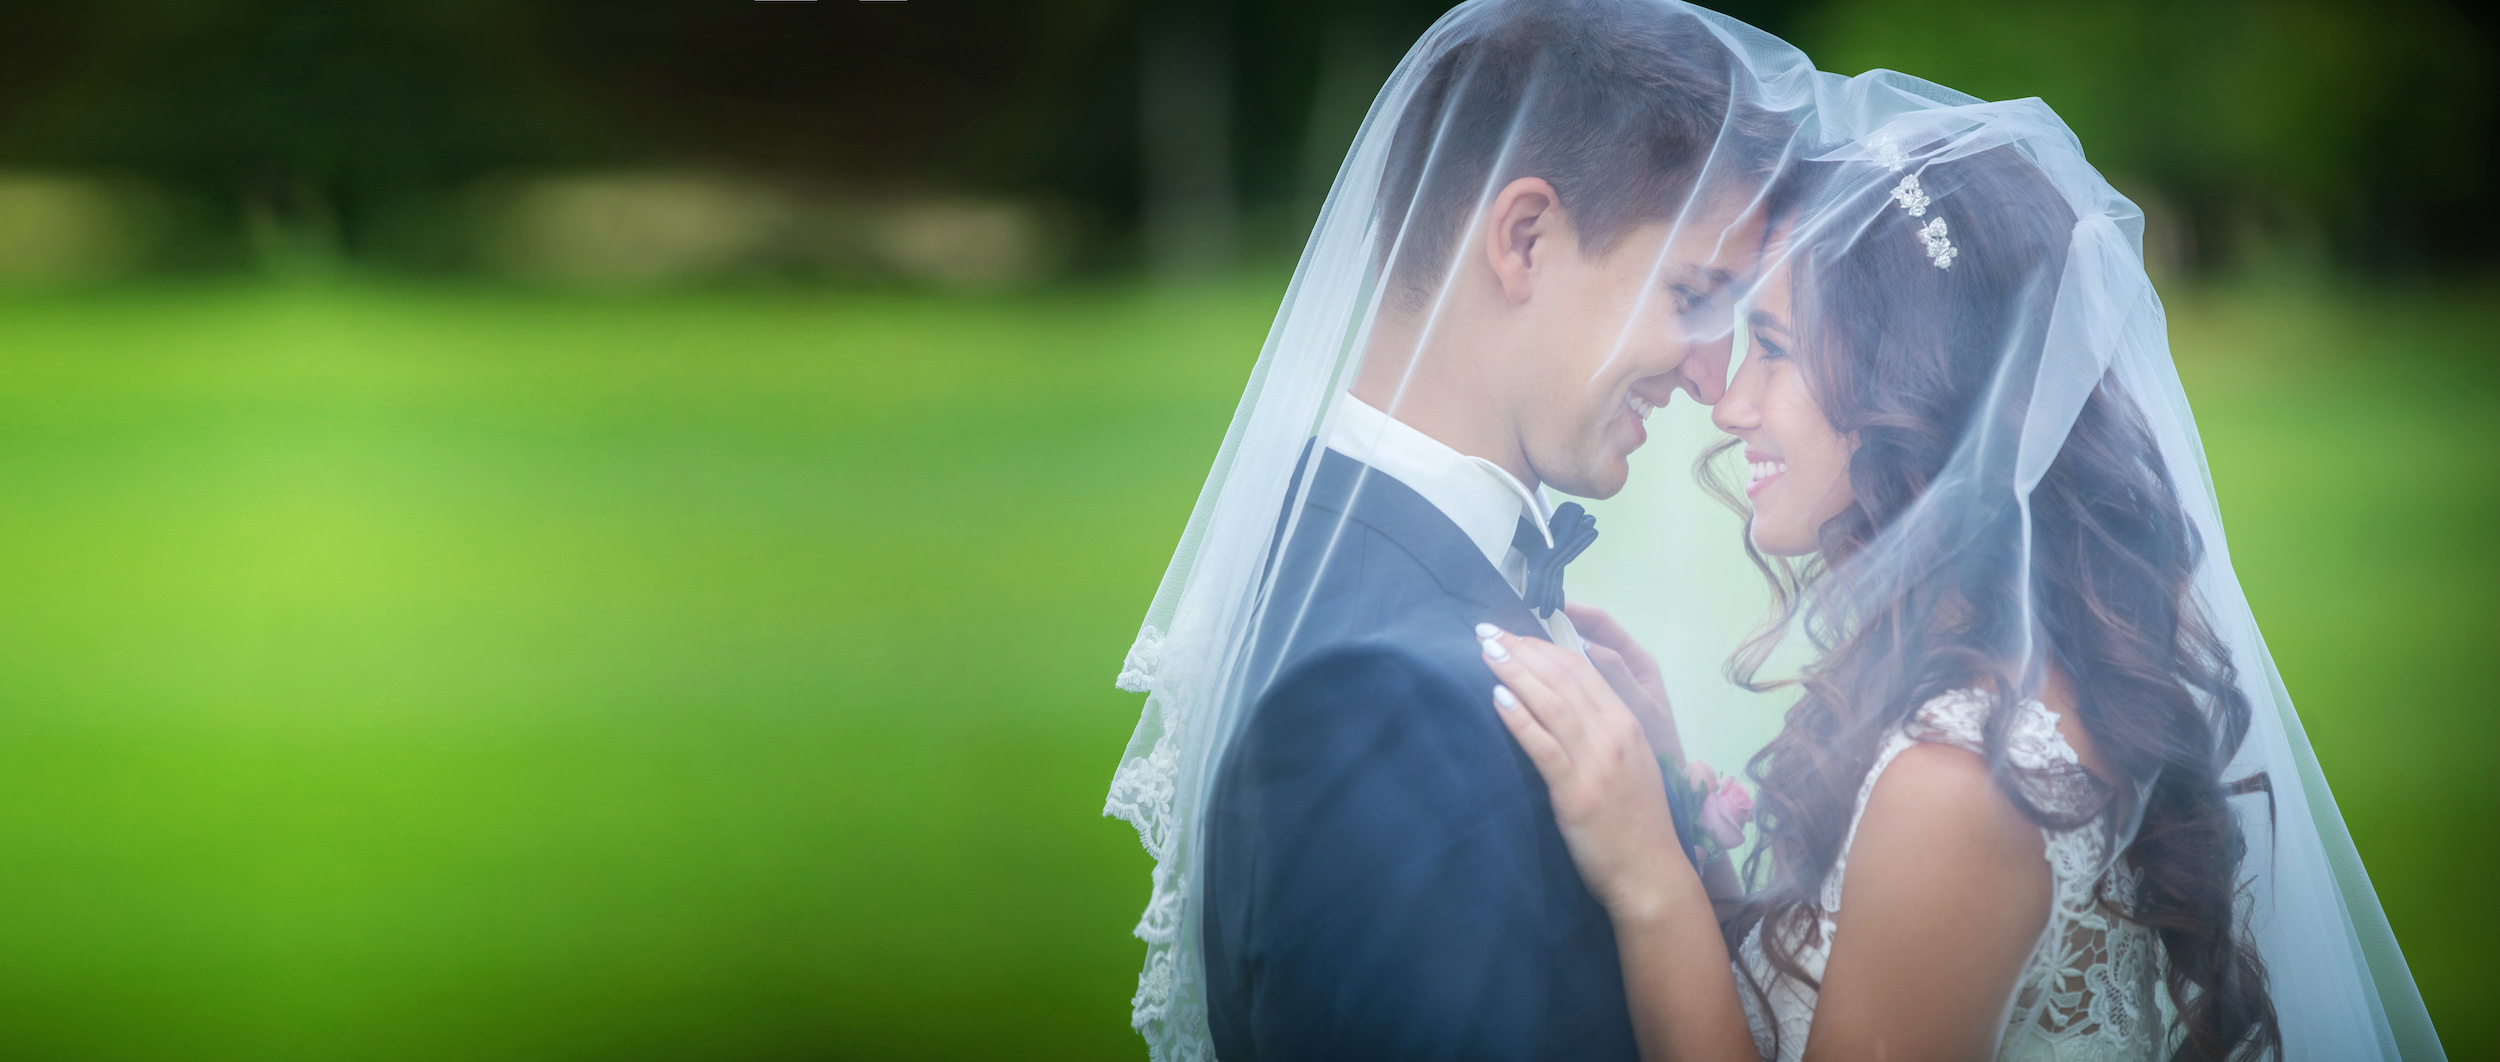 Young Newlyweds | Colorado Relationship Therapy